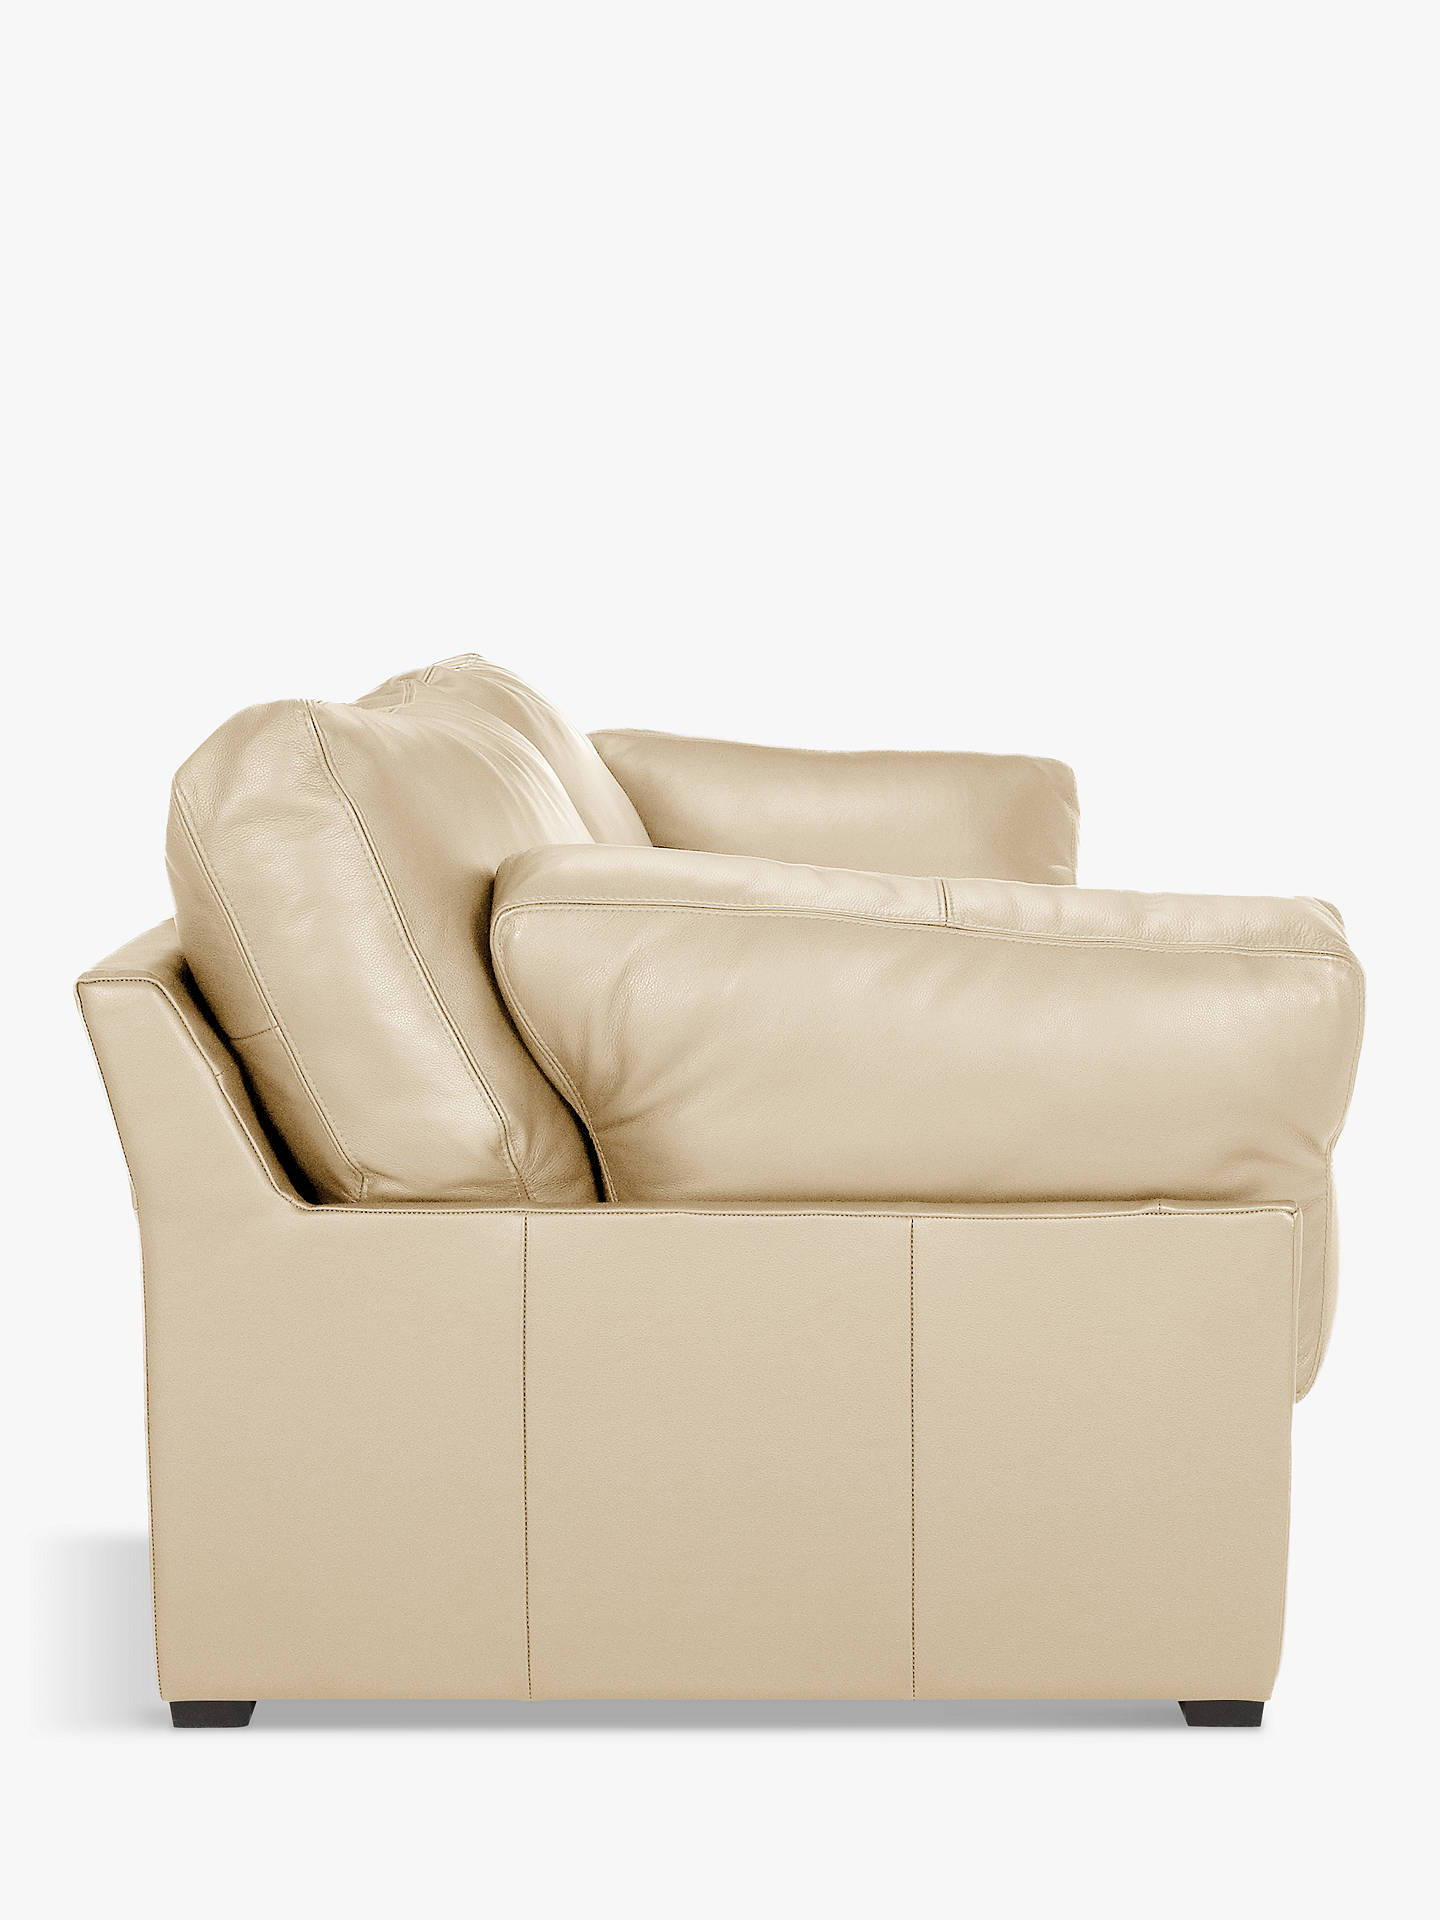 Buy John Lewis & Partners Java Medium 2 Seater Leather Sofa, Dark Leg, Contempo Ivory Online at johnlewis.com